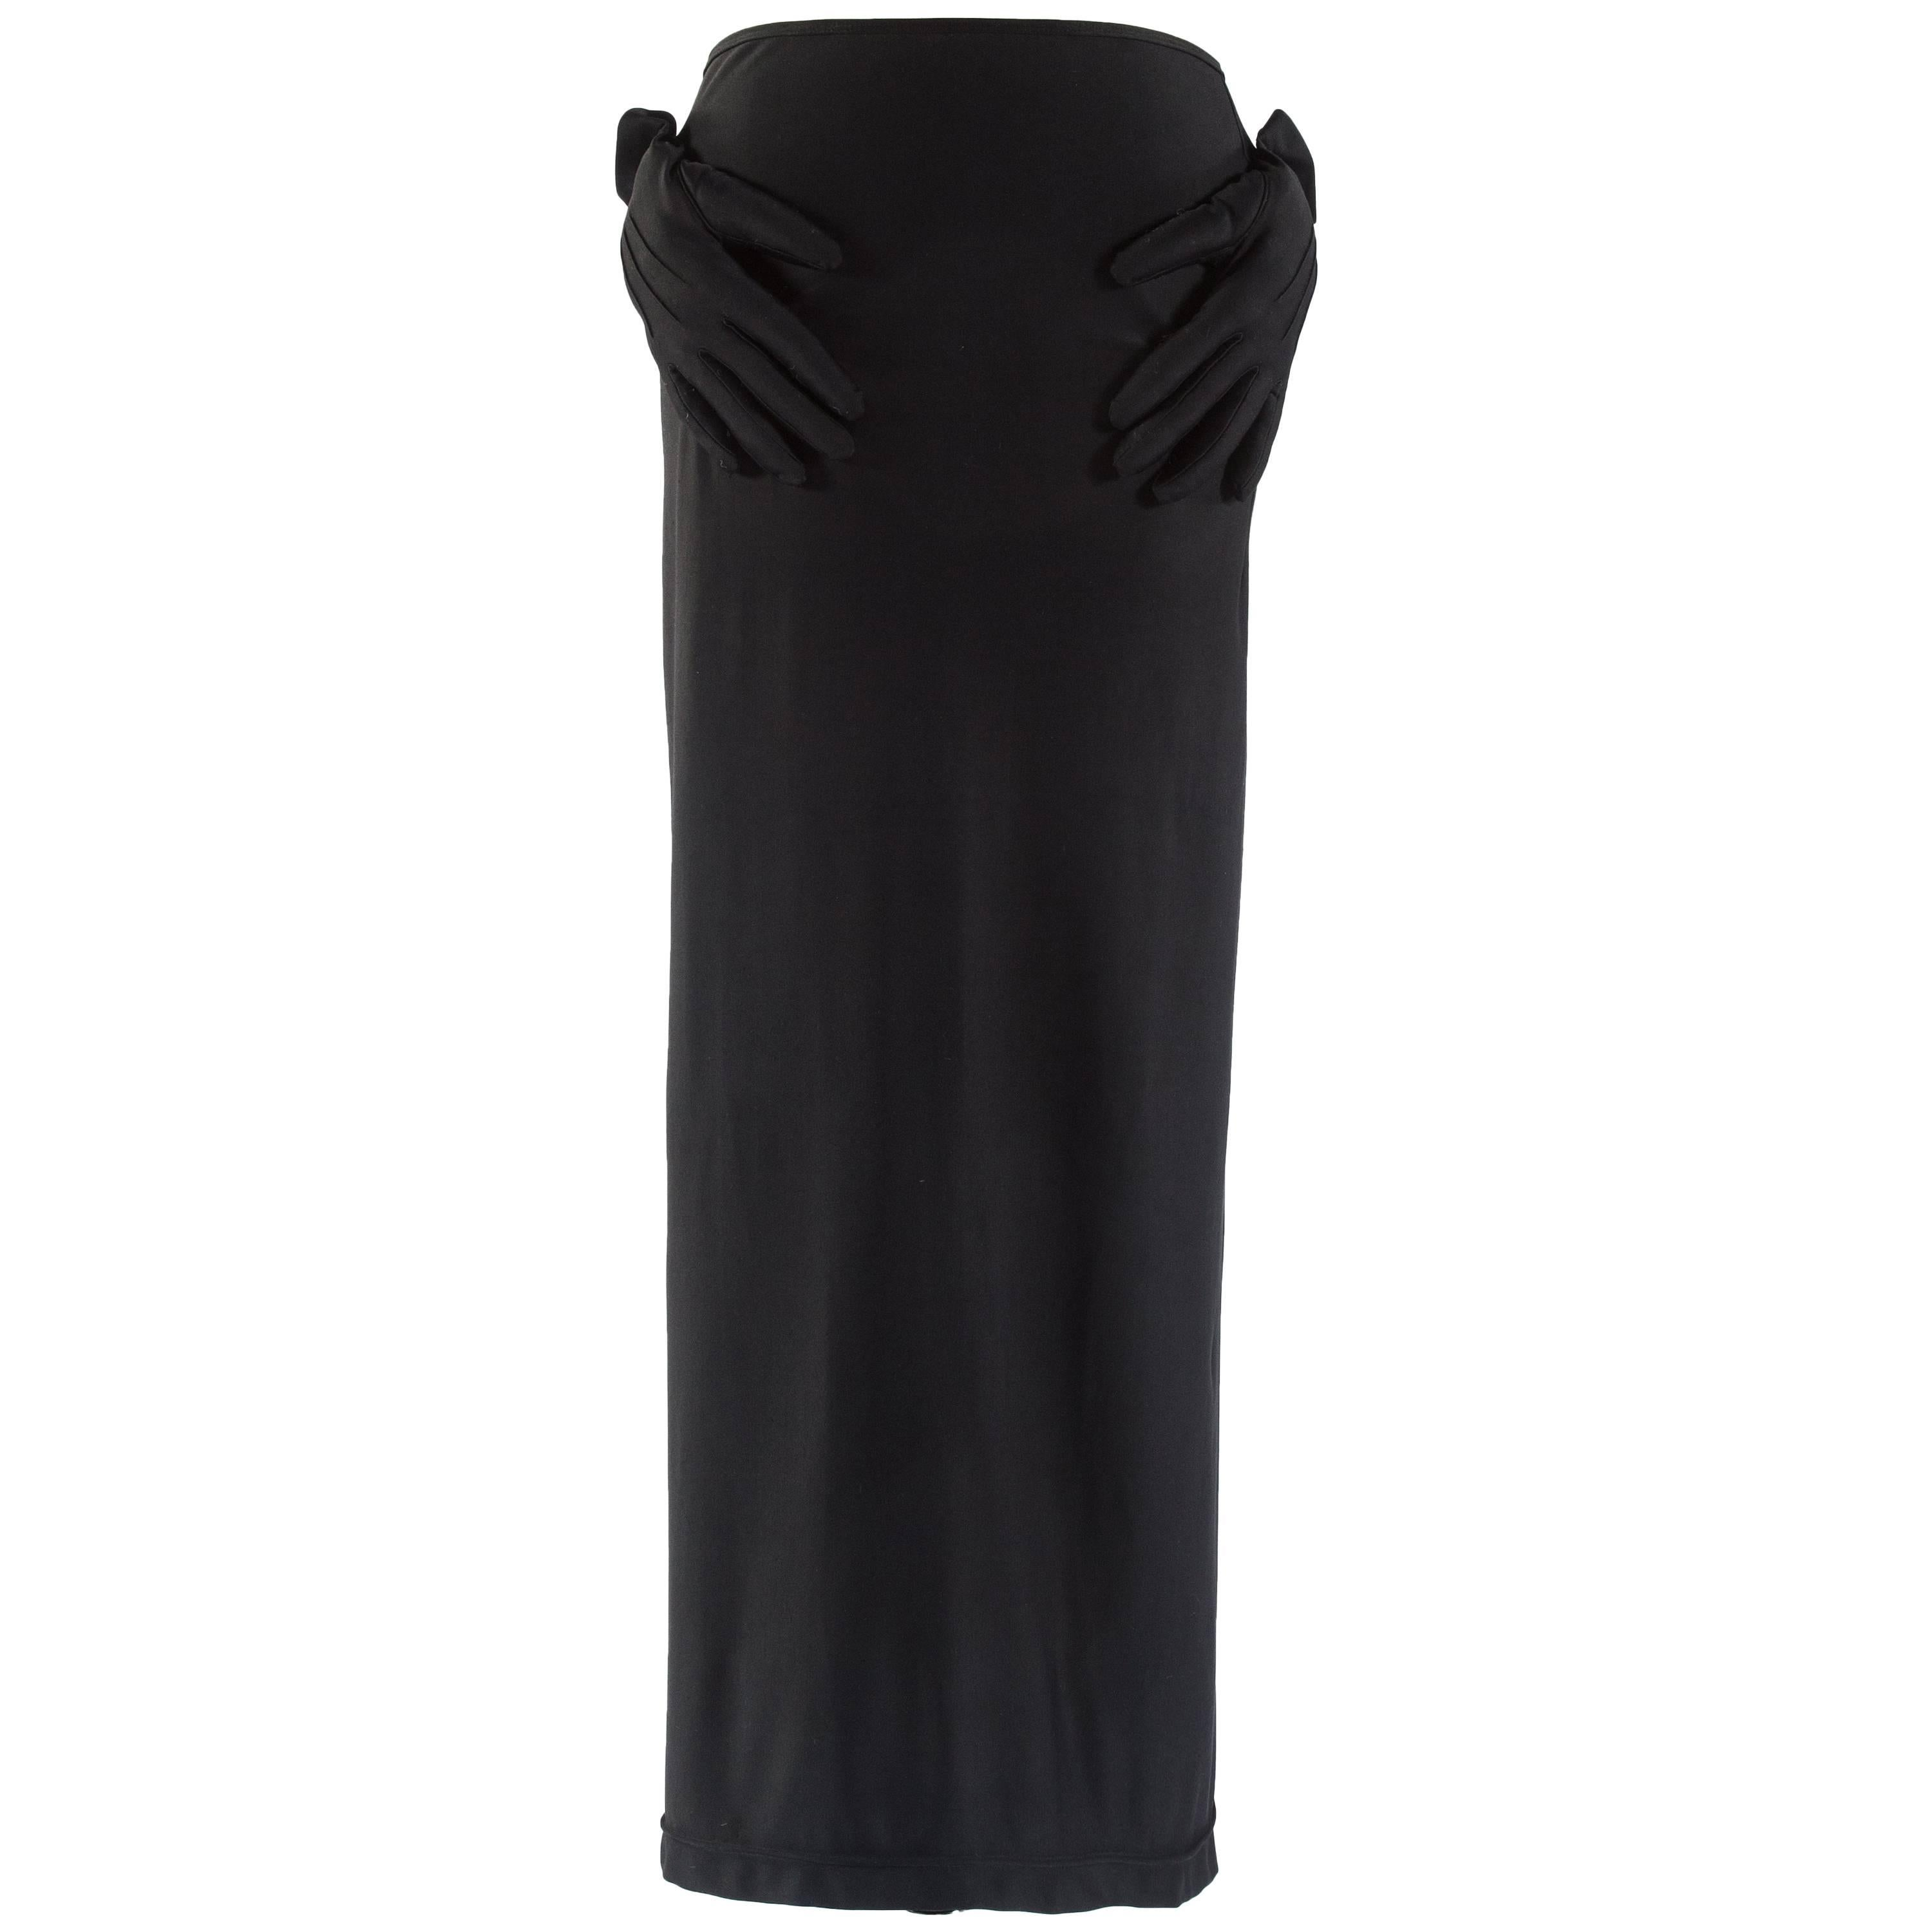 a08664818f74 Comme des Garcons black spandex pencil skirt with embossed gloves ...